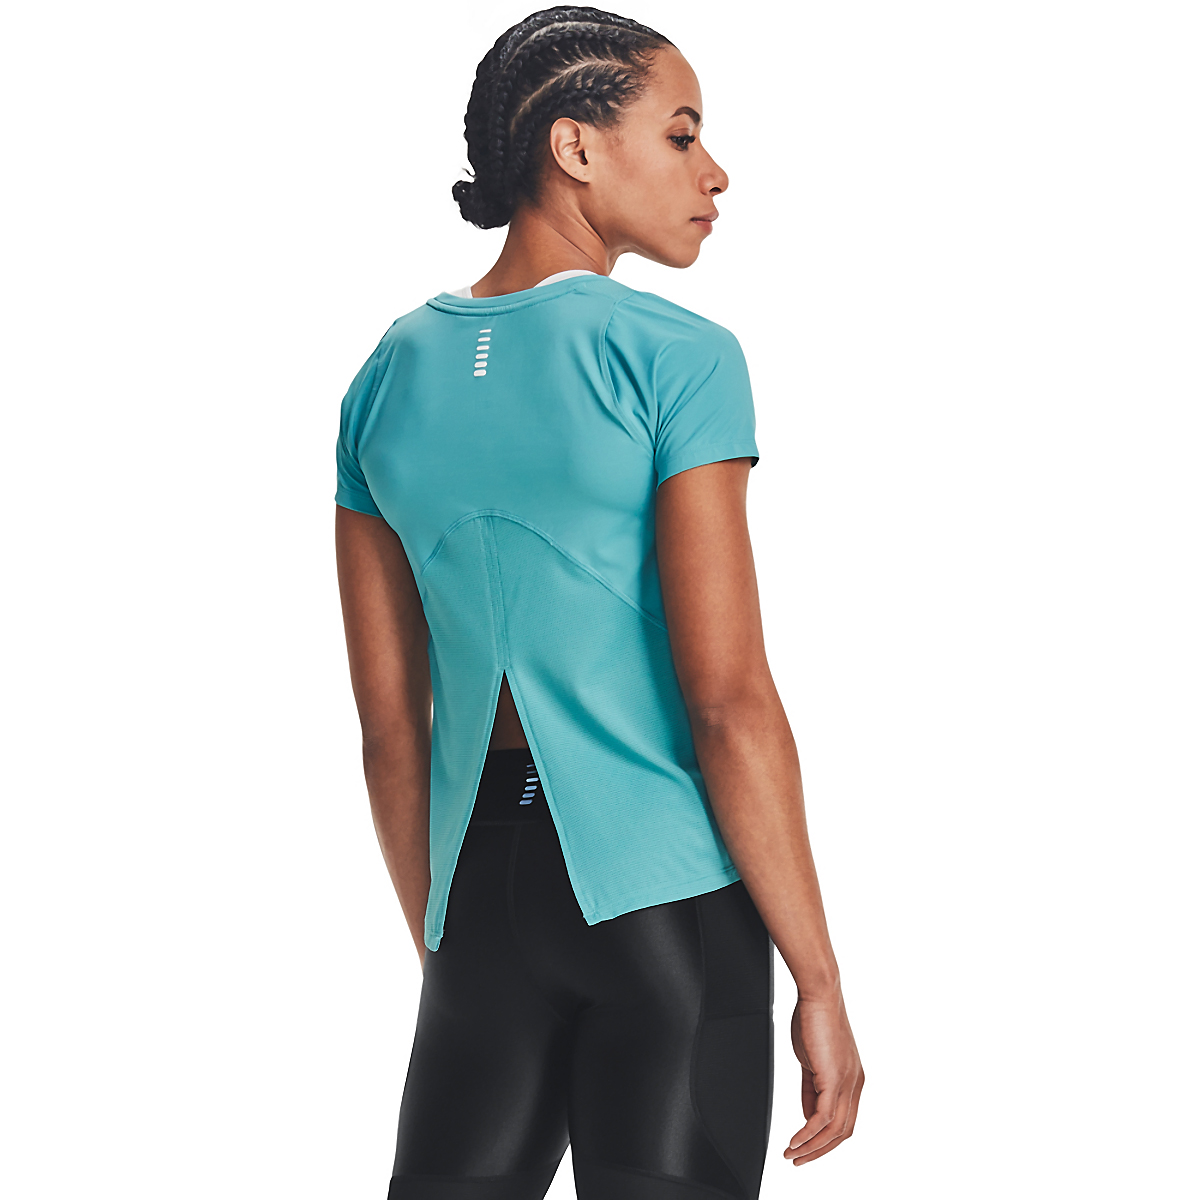 Women's Under Armour Iso-Chill Run Short Sleeve Tee, , large, image 2